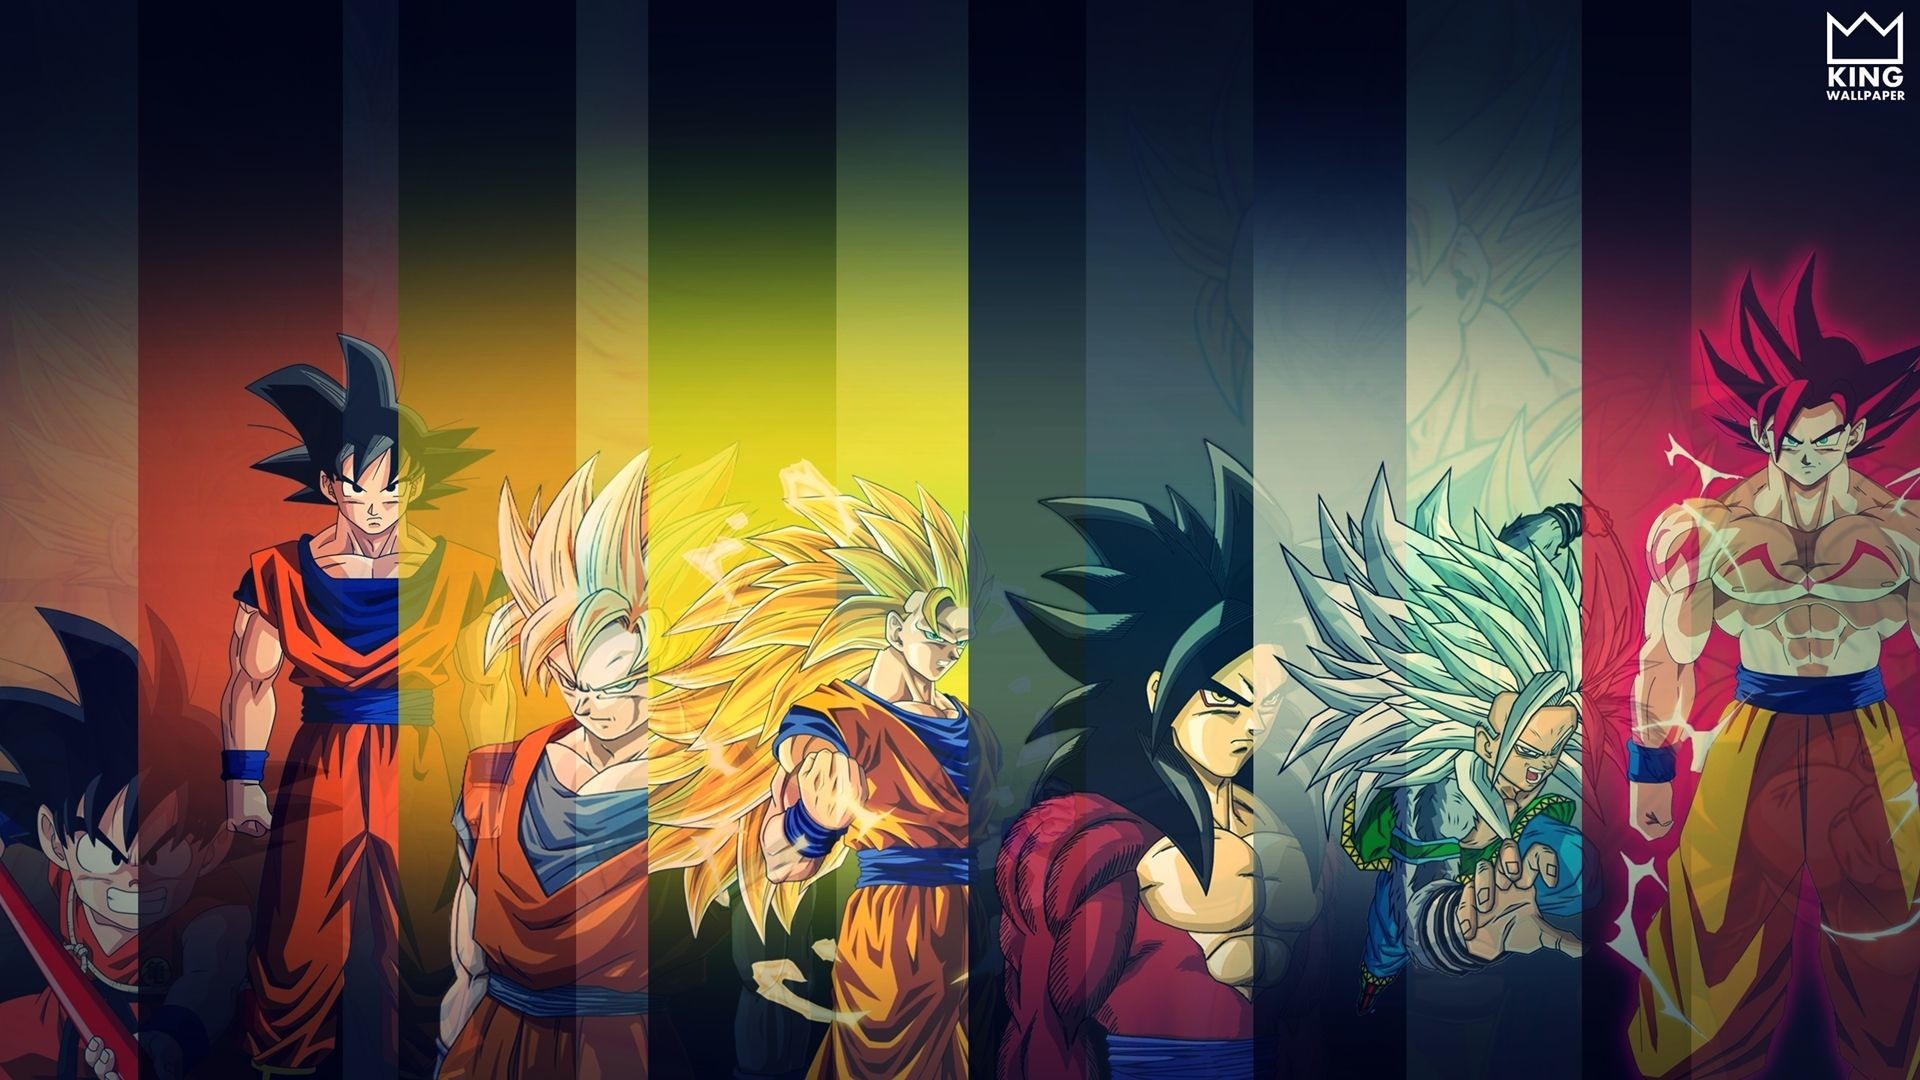 1920x1080 40 Best Goku Wallpaper Hd For PC Dragon Ball Z